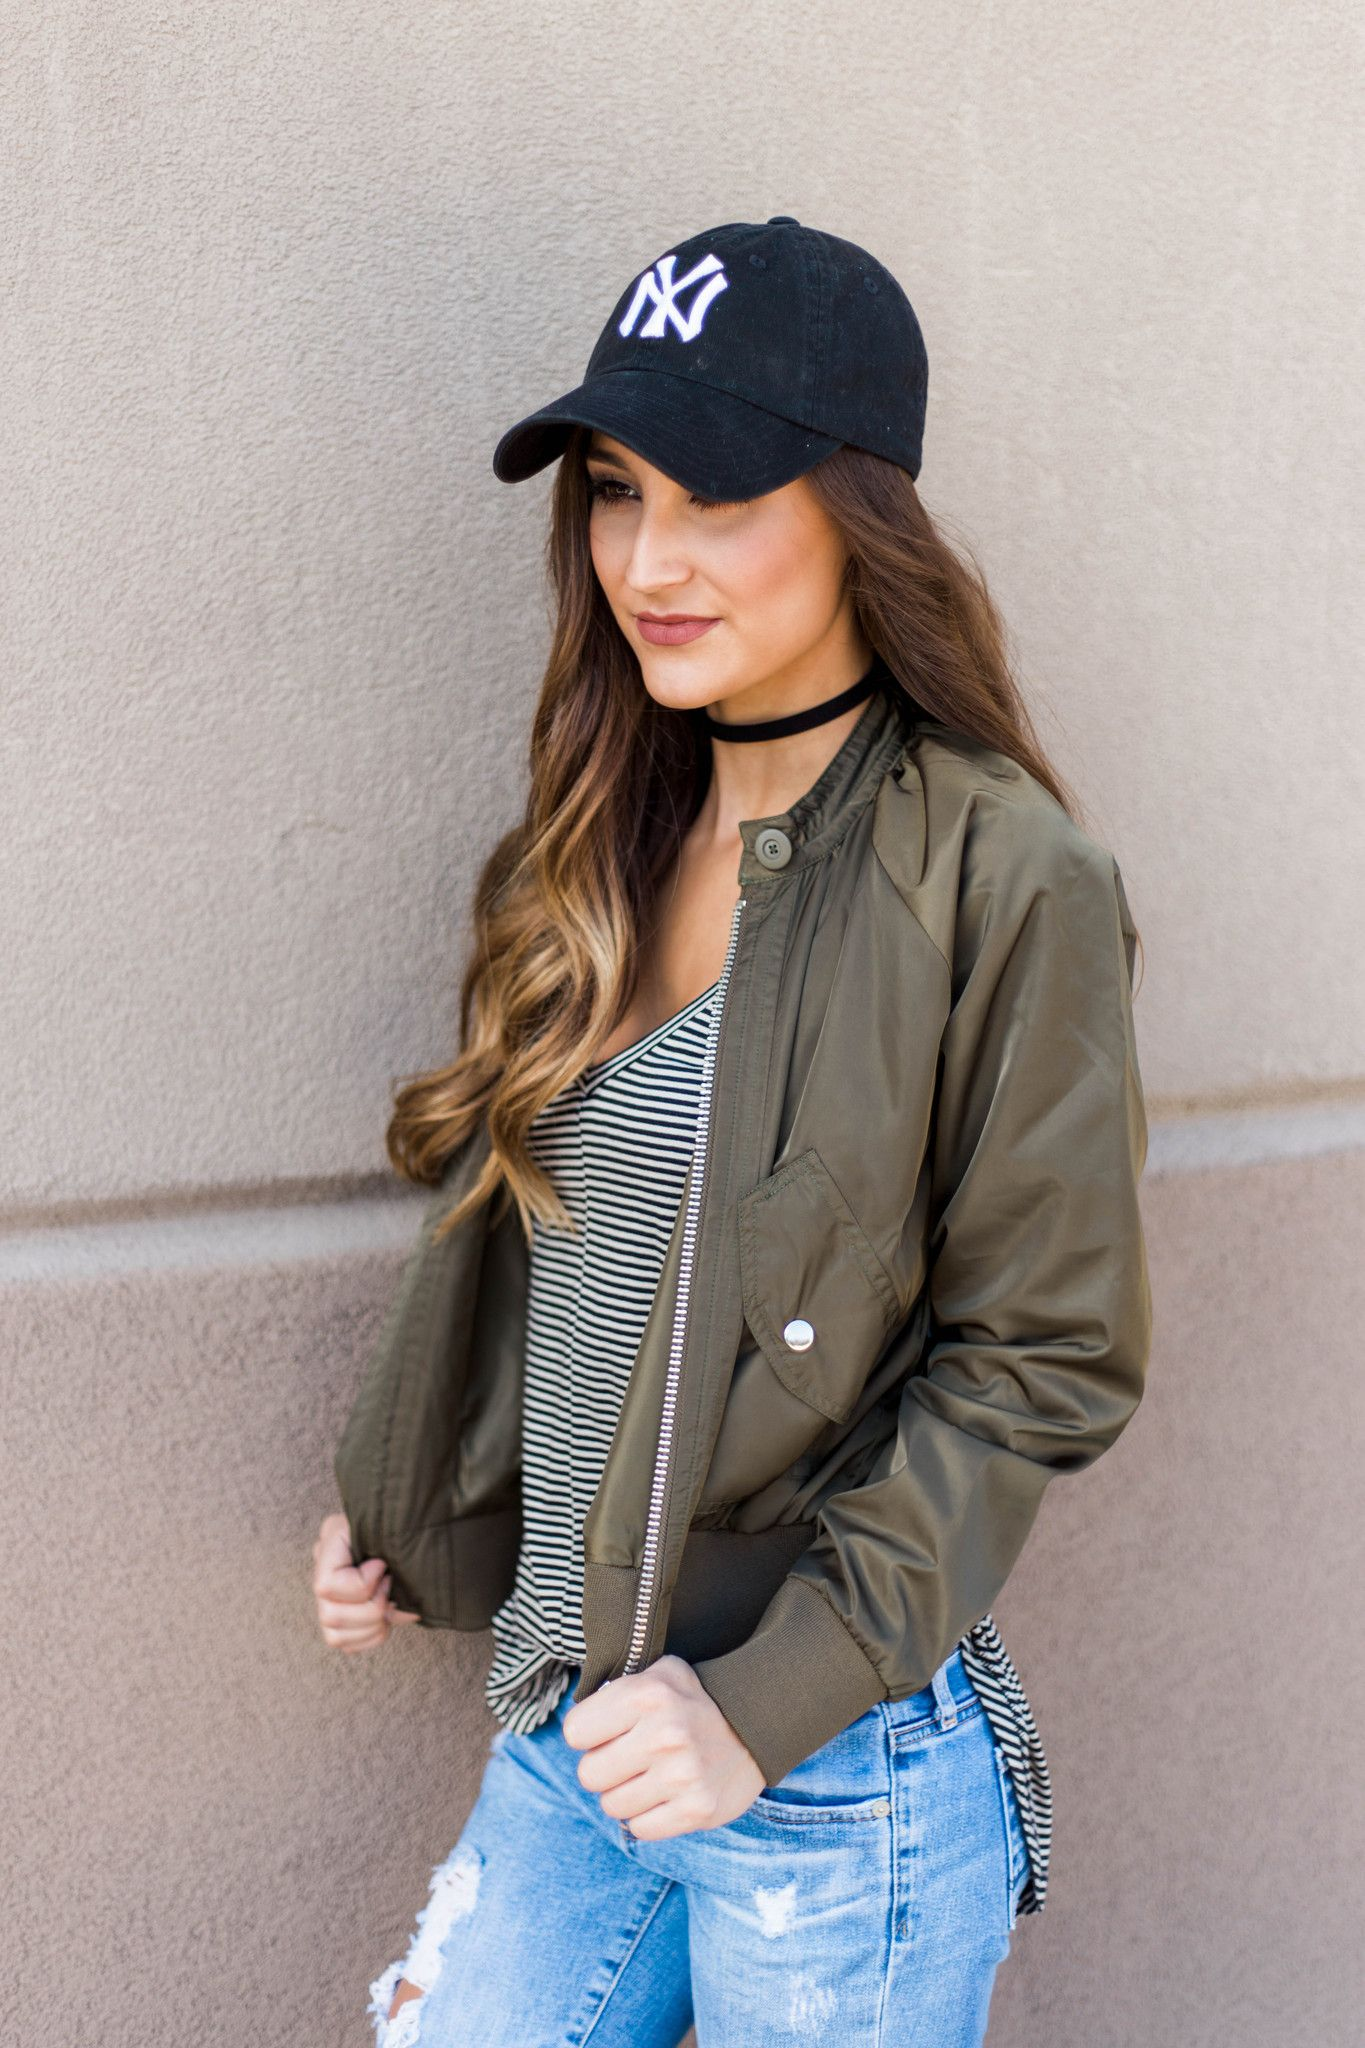 Free People Moss Midnight Bomber r | Foi Clothing Boutique | Buy NOW on foiclothing.com | Free People Fall 2016 | Fall Obsession | Blogger Style  | Fall 2016 Outfit | Bomber Jacket | Must Have | OOTD | WIWT | Everyday Wear | Wear Everyday | Staff Favorite | Also Available in Wine | Must Have